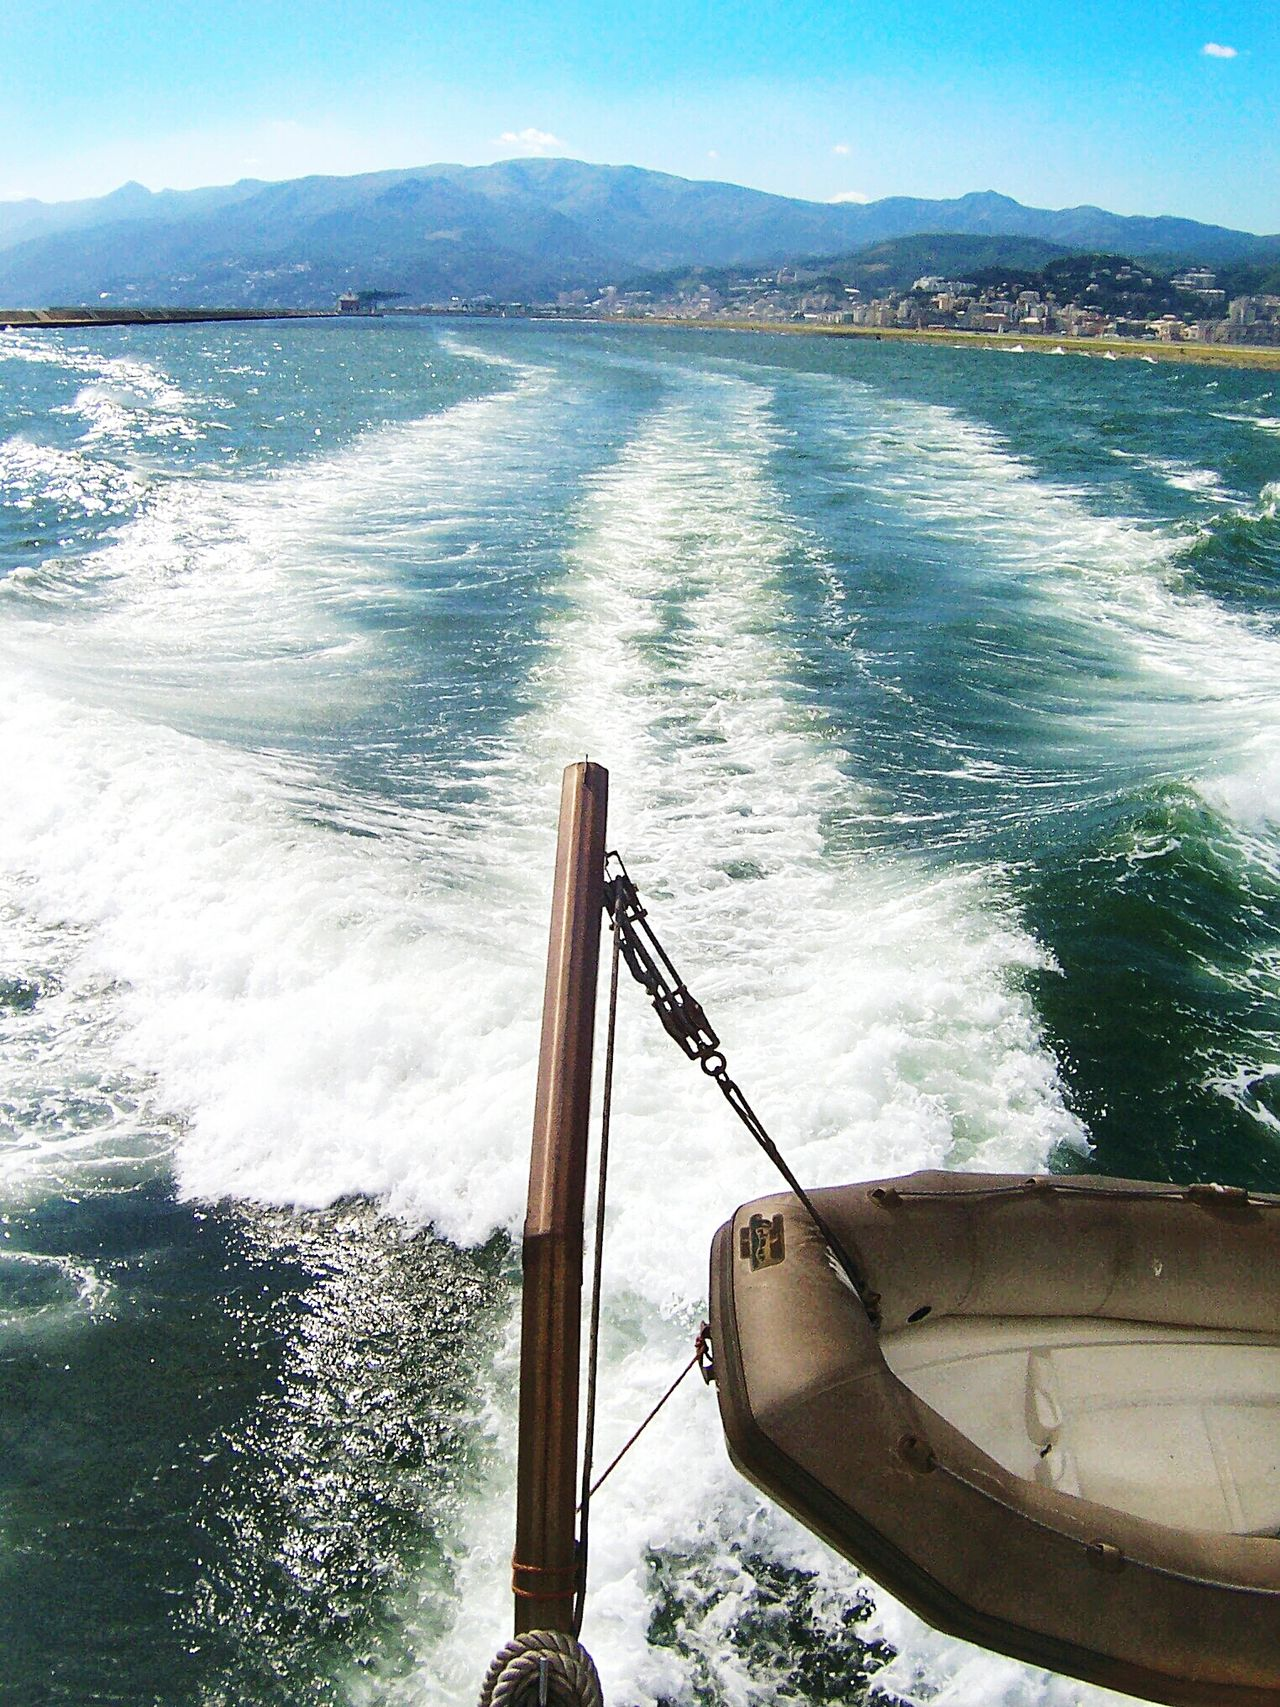 """On the road"". Sea Liguria Boat Ride Mare Sea View Eyeemfilter F3 at max Sea And Mountain Marine Water Foam Trail"